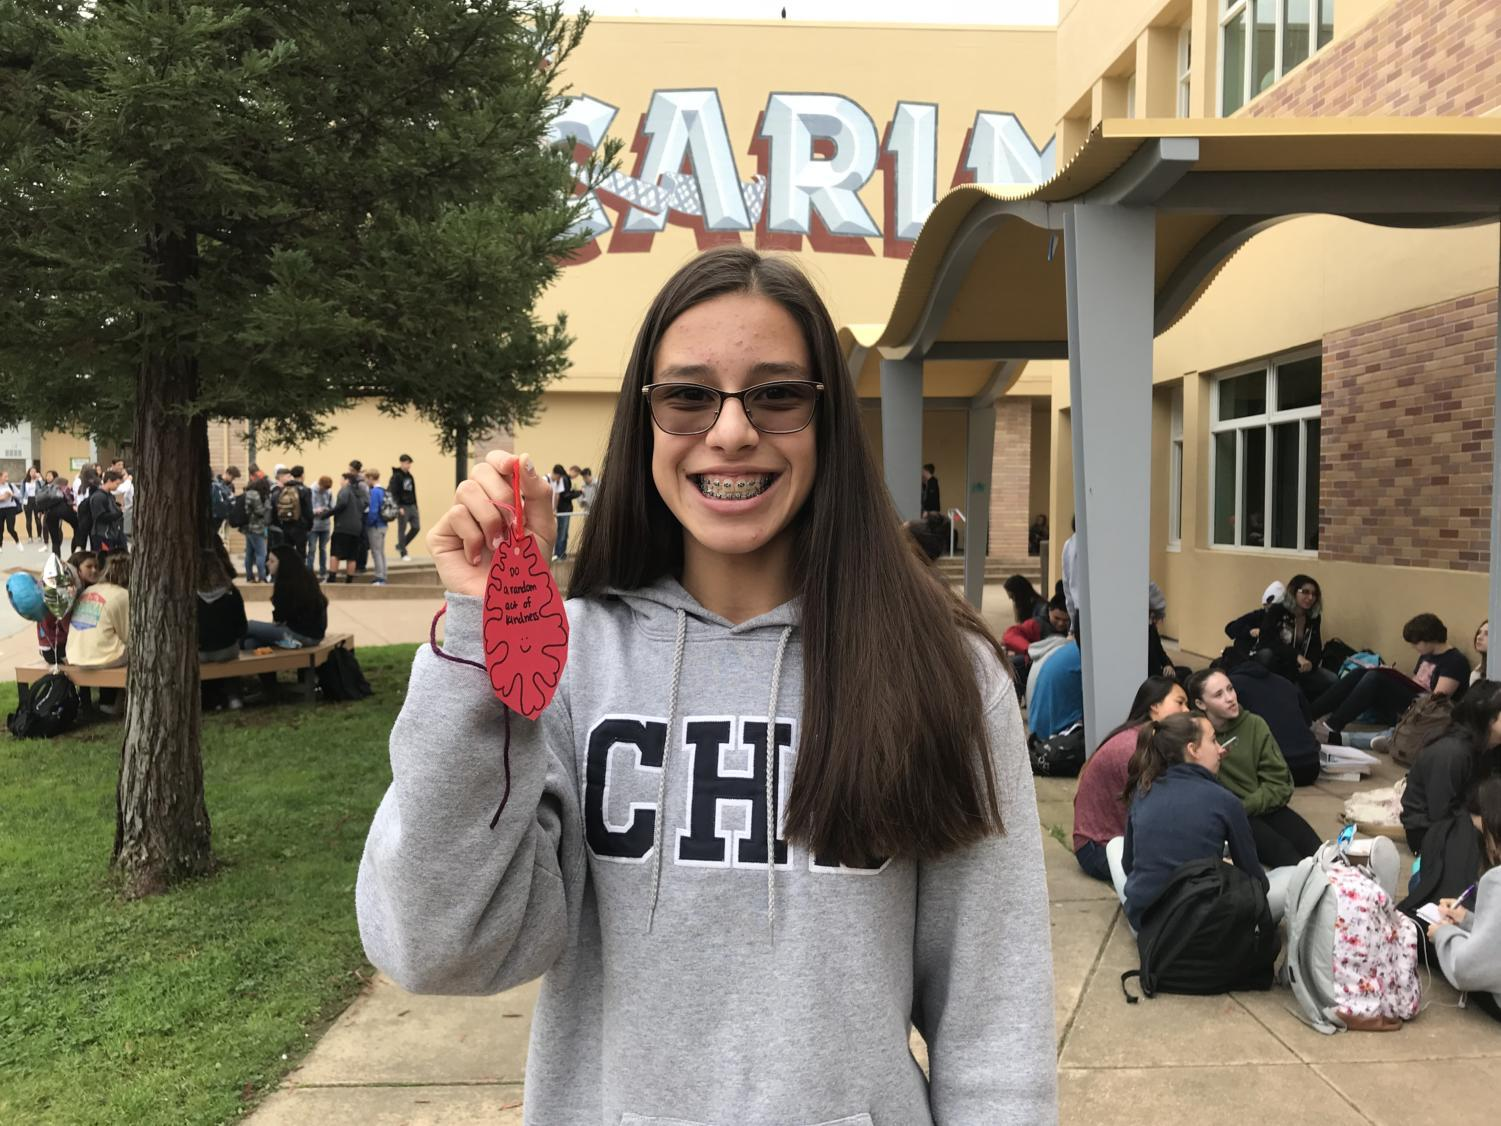 Freshman+Megan+Bhatt+believes+that+the+Thanksgiving+Tree+cultivates+a+positive+environment+for+Carlmont+going+into+the+holidays.+Bhatt+is+thankful+for+%22food%2C+family%2C+and+friends+at+school.%22